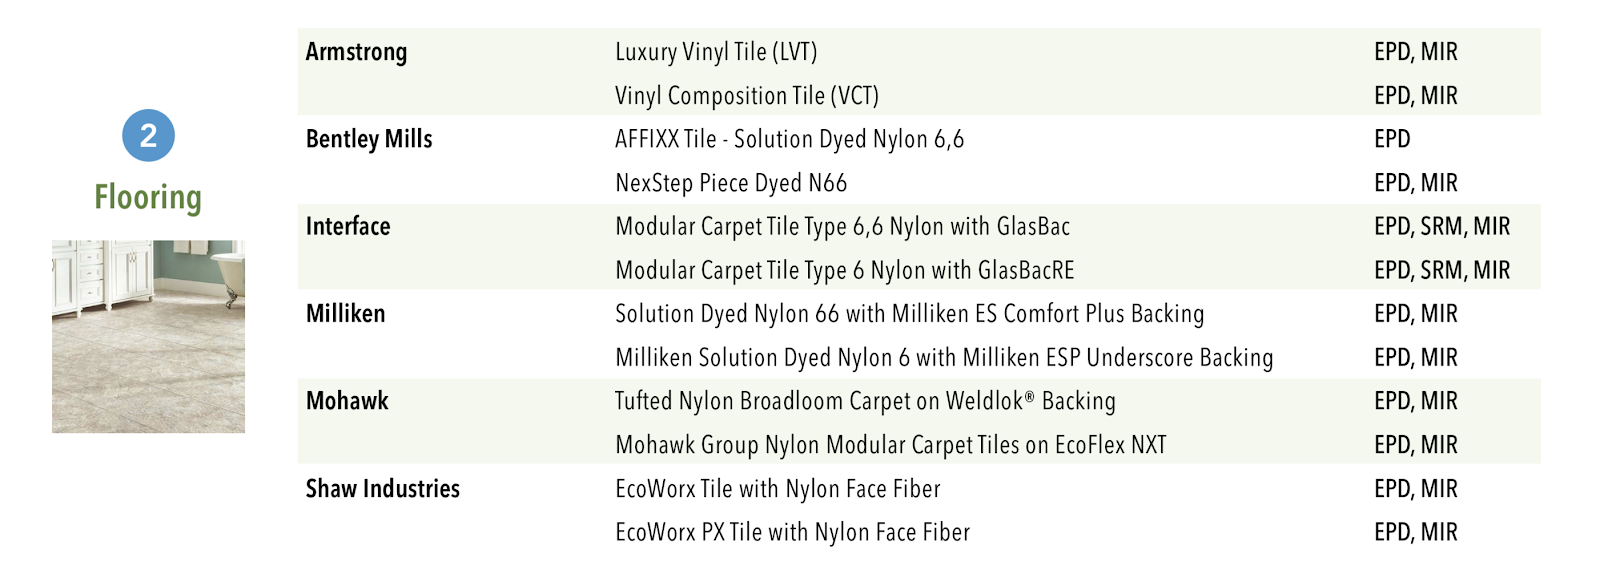 LEED v4 compliant flooring products LEED Product Guide